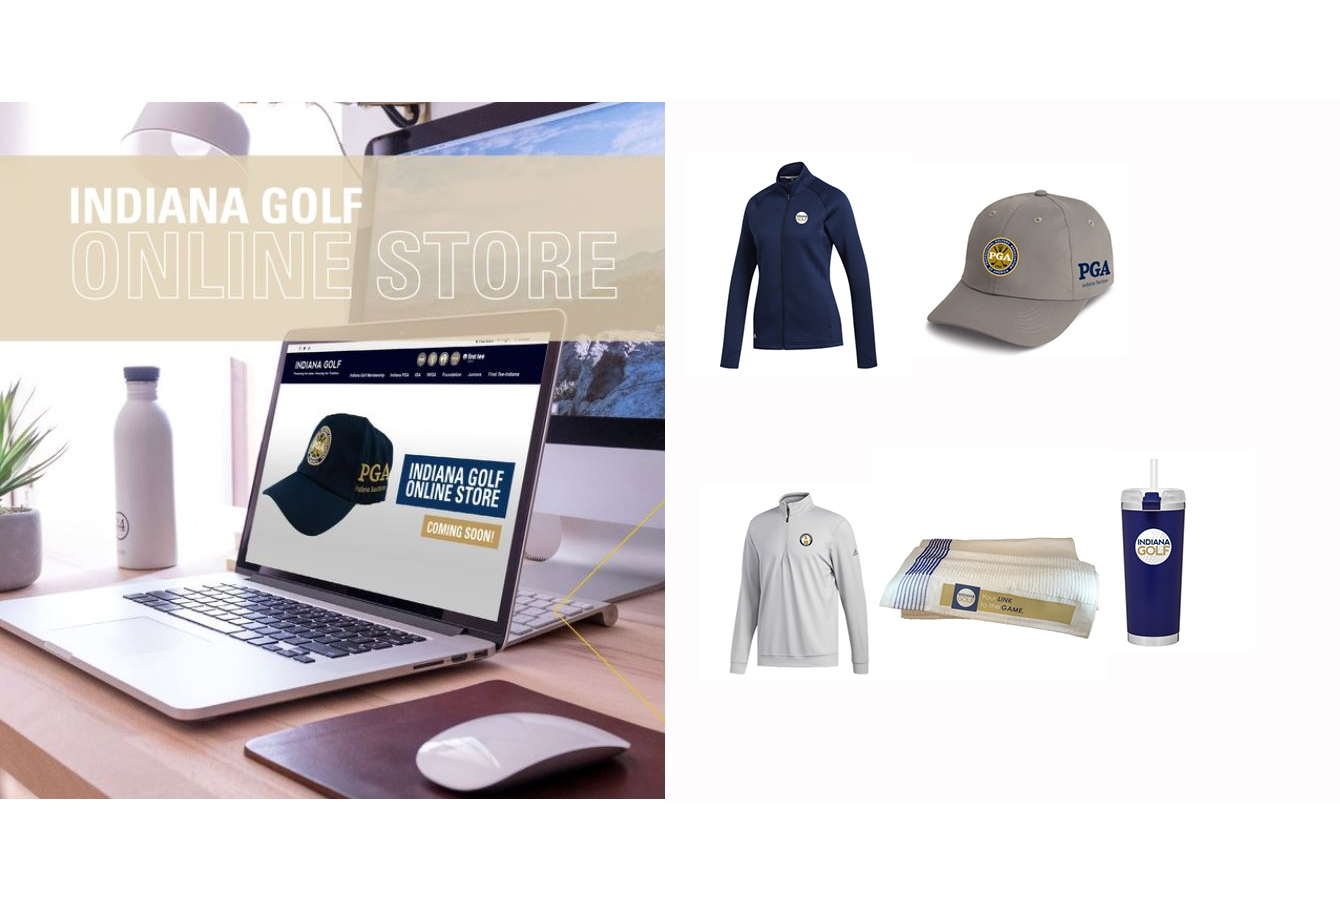 Indiana Golf Online Store is Live!